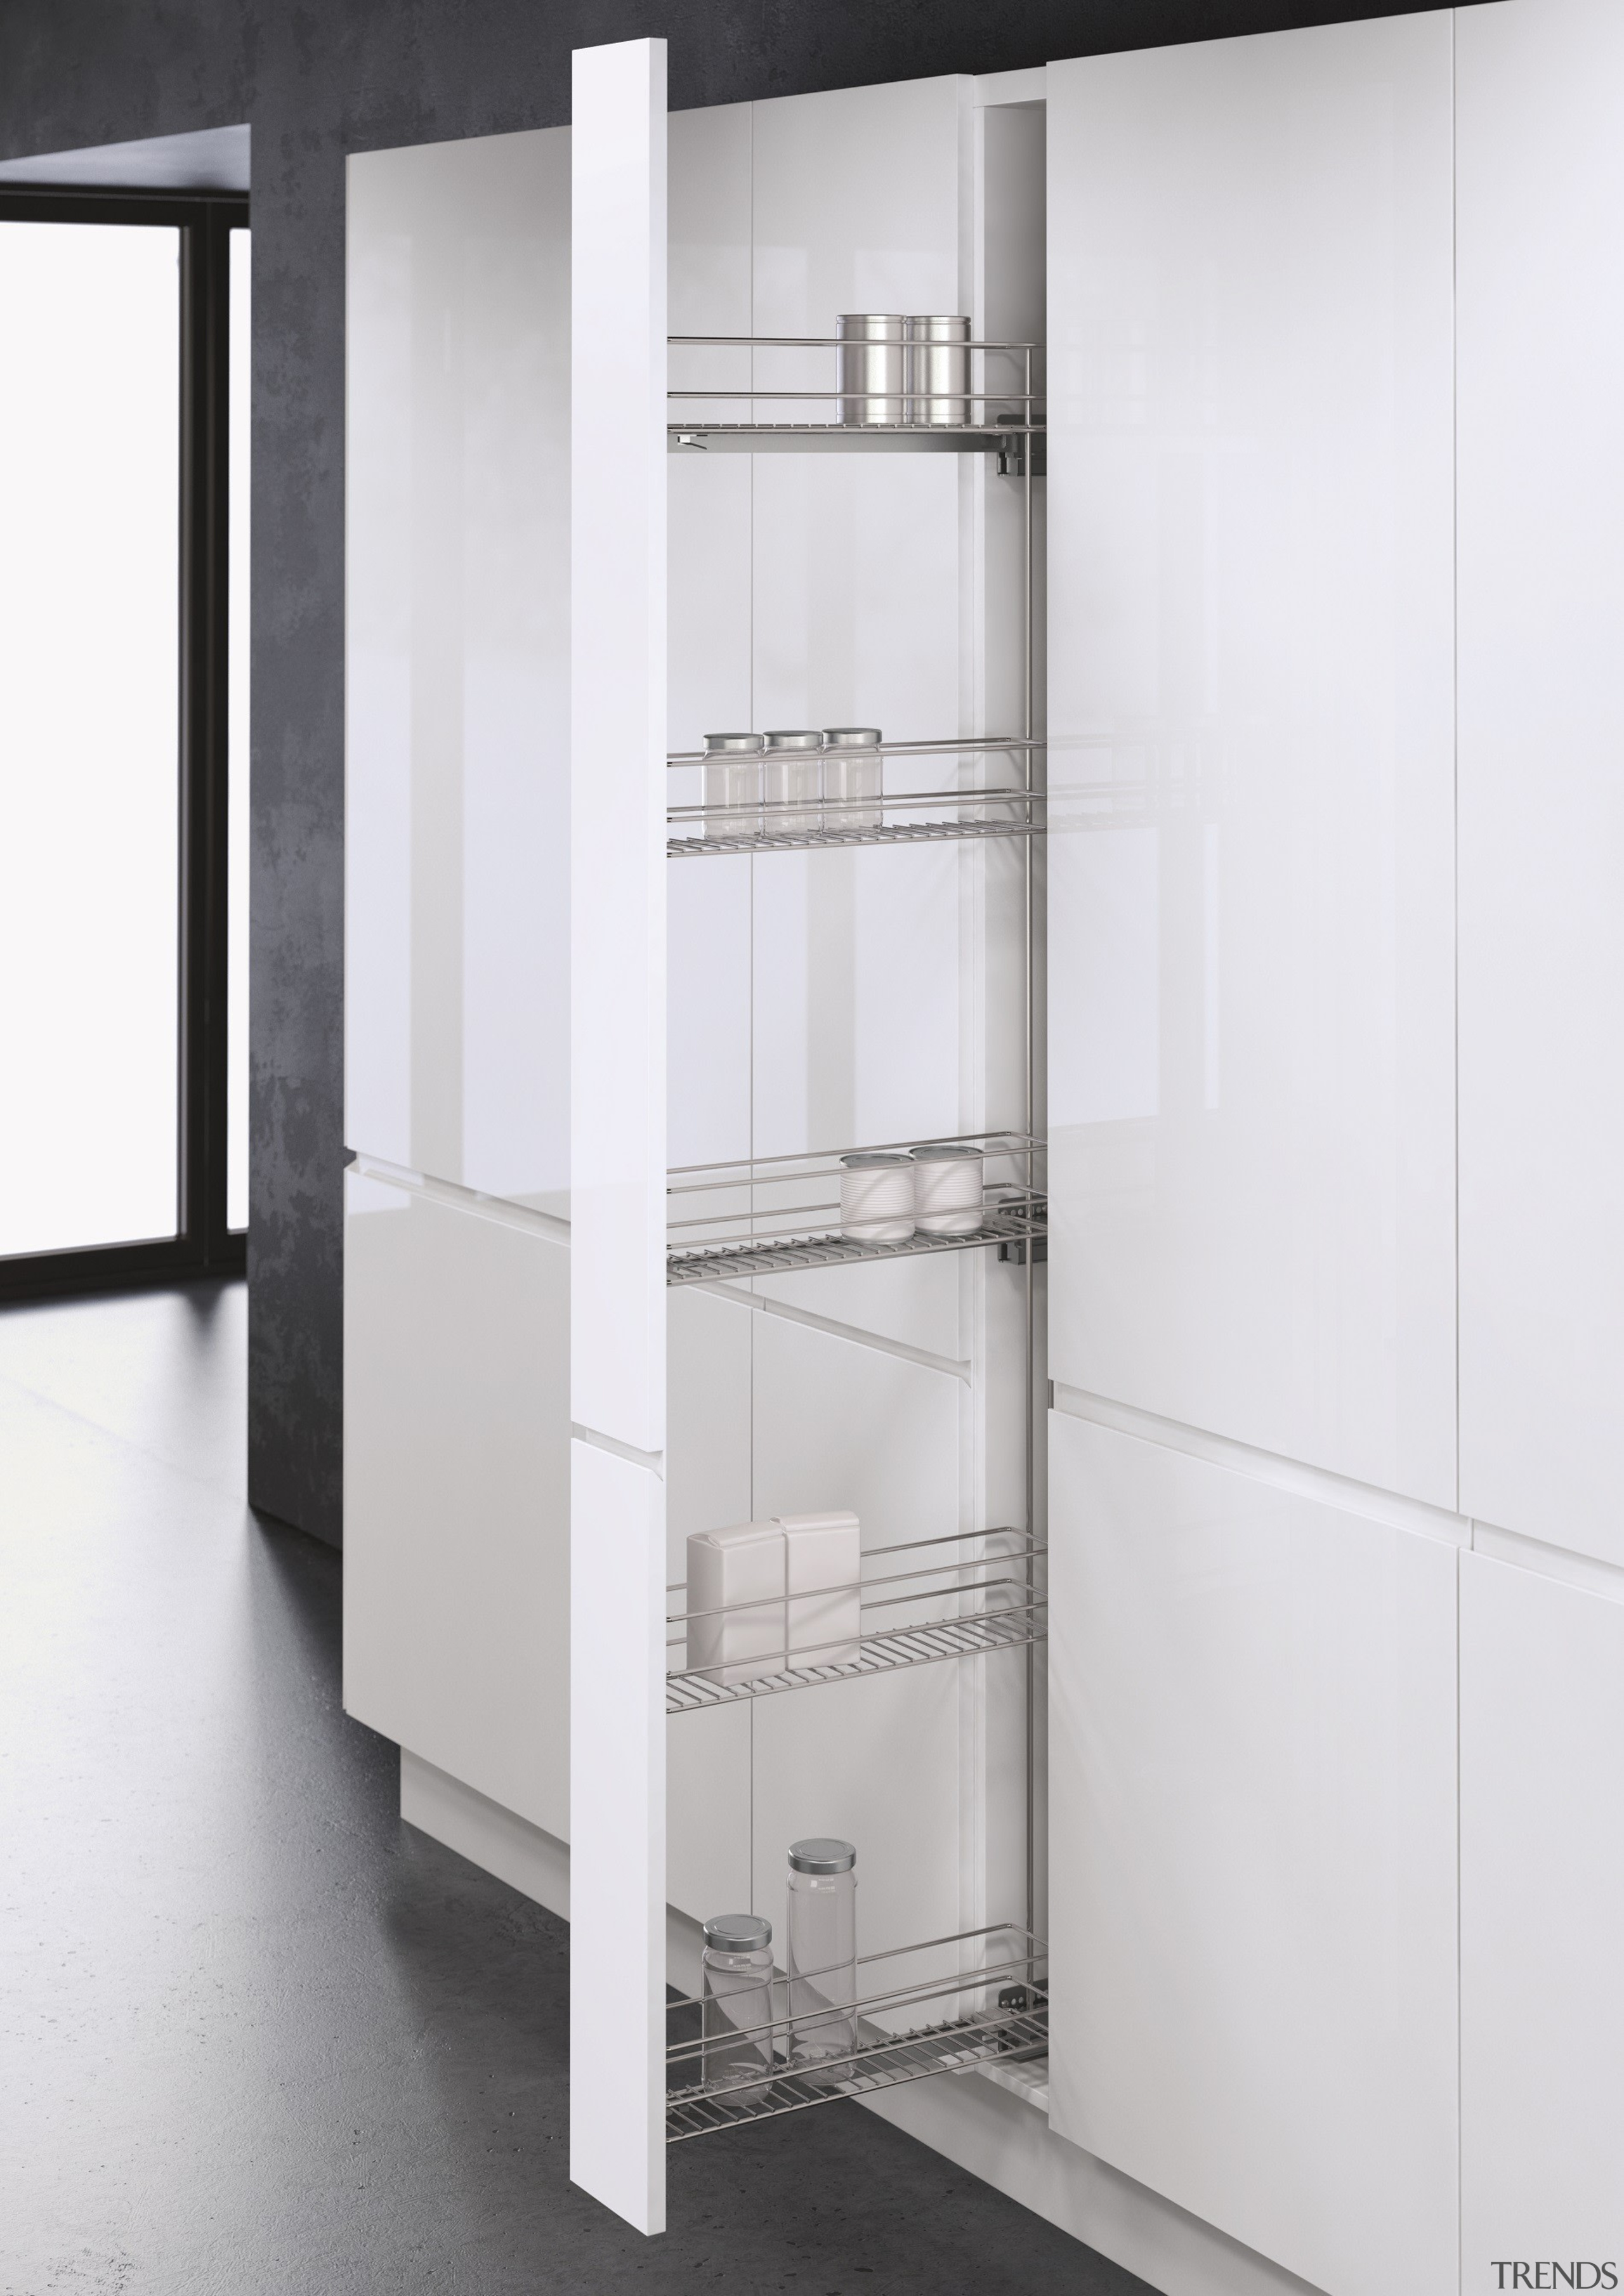 Vauth Sagel VS TAL WIRO Rack 15 Tall bathroom accessory, display case, furniture, product, shelving, white